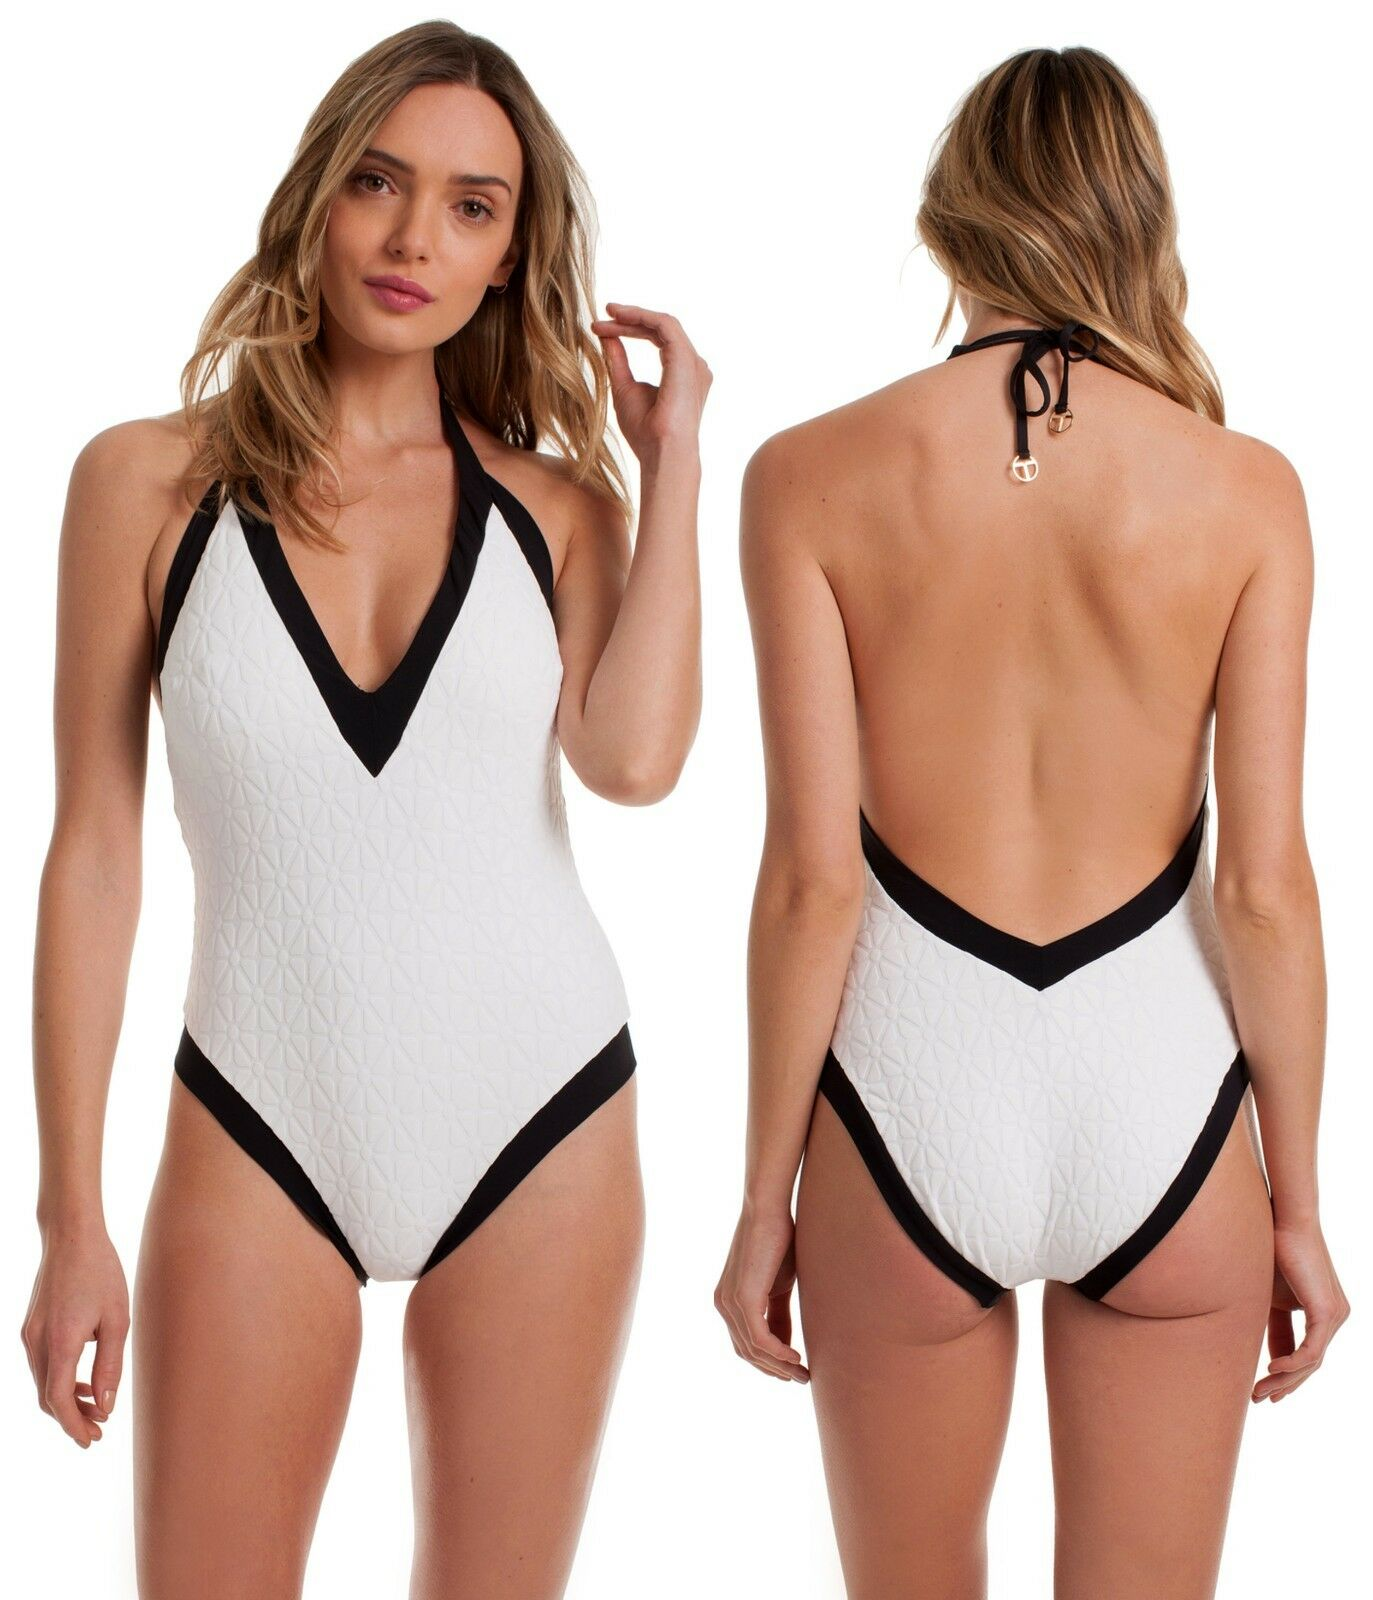 148 Trina Turk Sunshine Jacquard Plunge Halter White One Piece Swimsuit